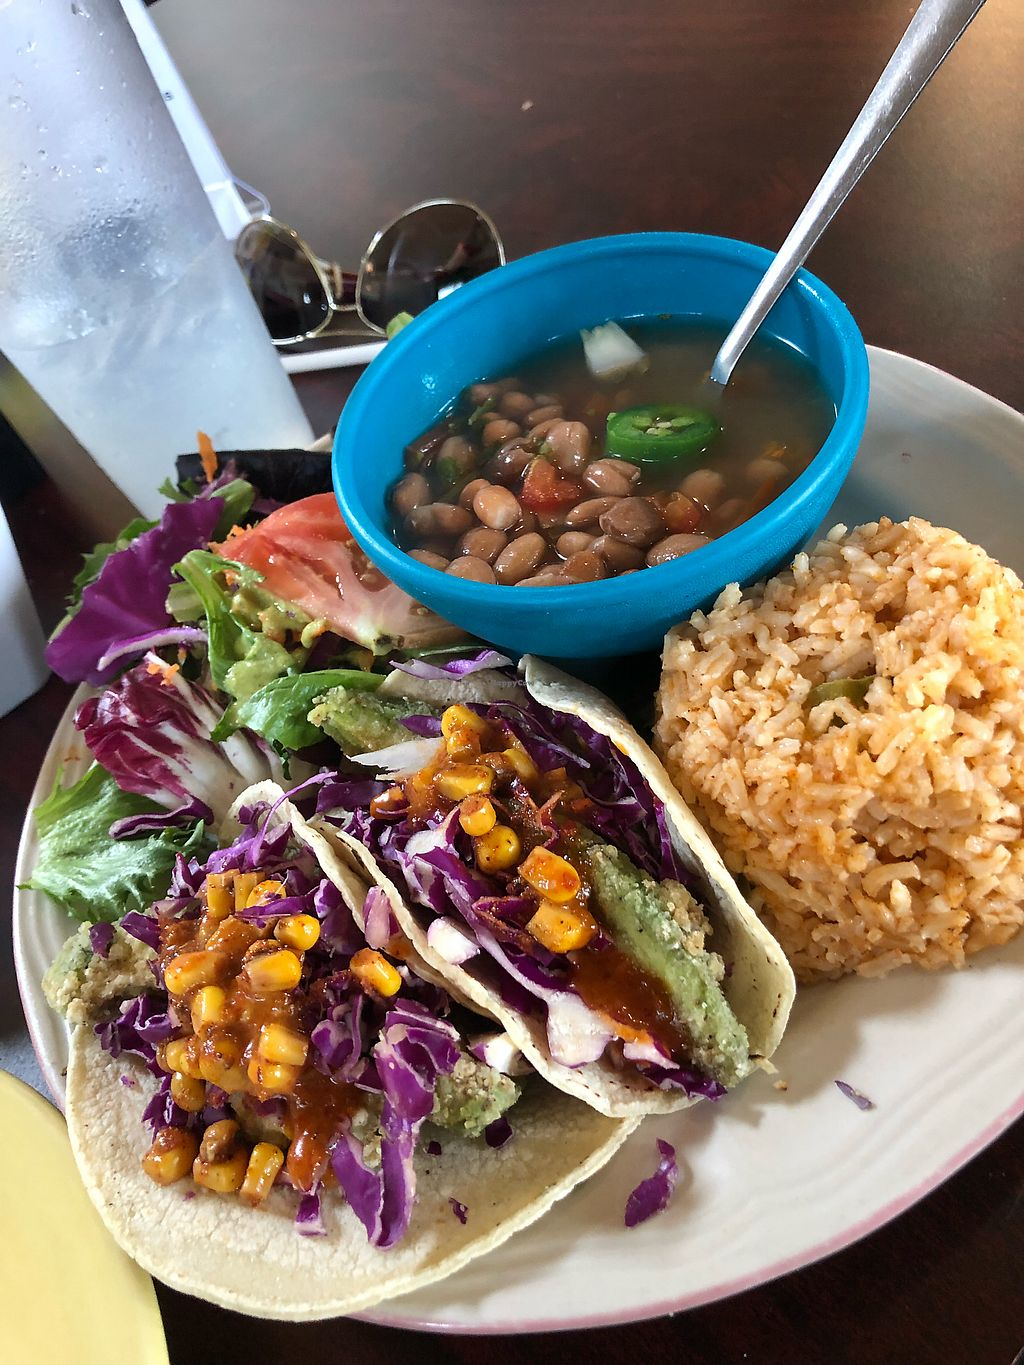 "Photo of Viva Vegeria  by <a href=""/members/profile/geehearn"">geehearn</a> <br/>Fried Avocado Tacos <br/> March 17, 2018  - <a href='/contact/abuse/image/63637/372092'>Report</a>"